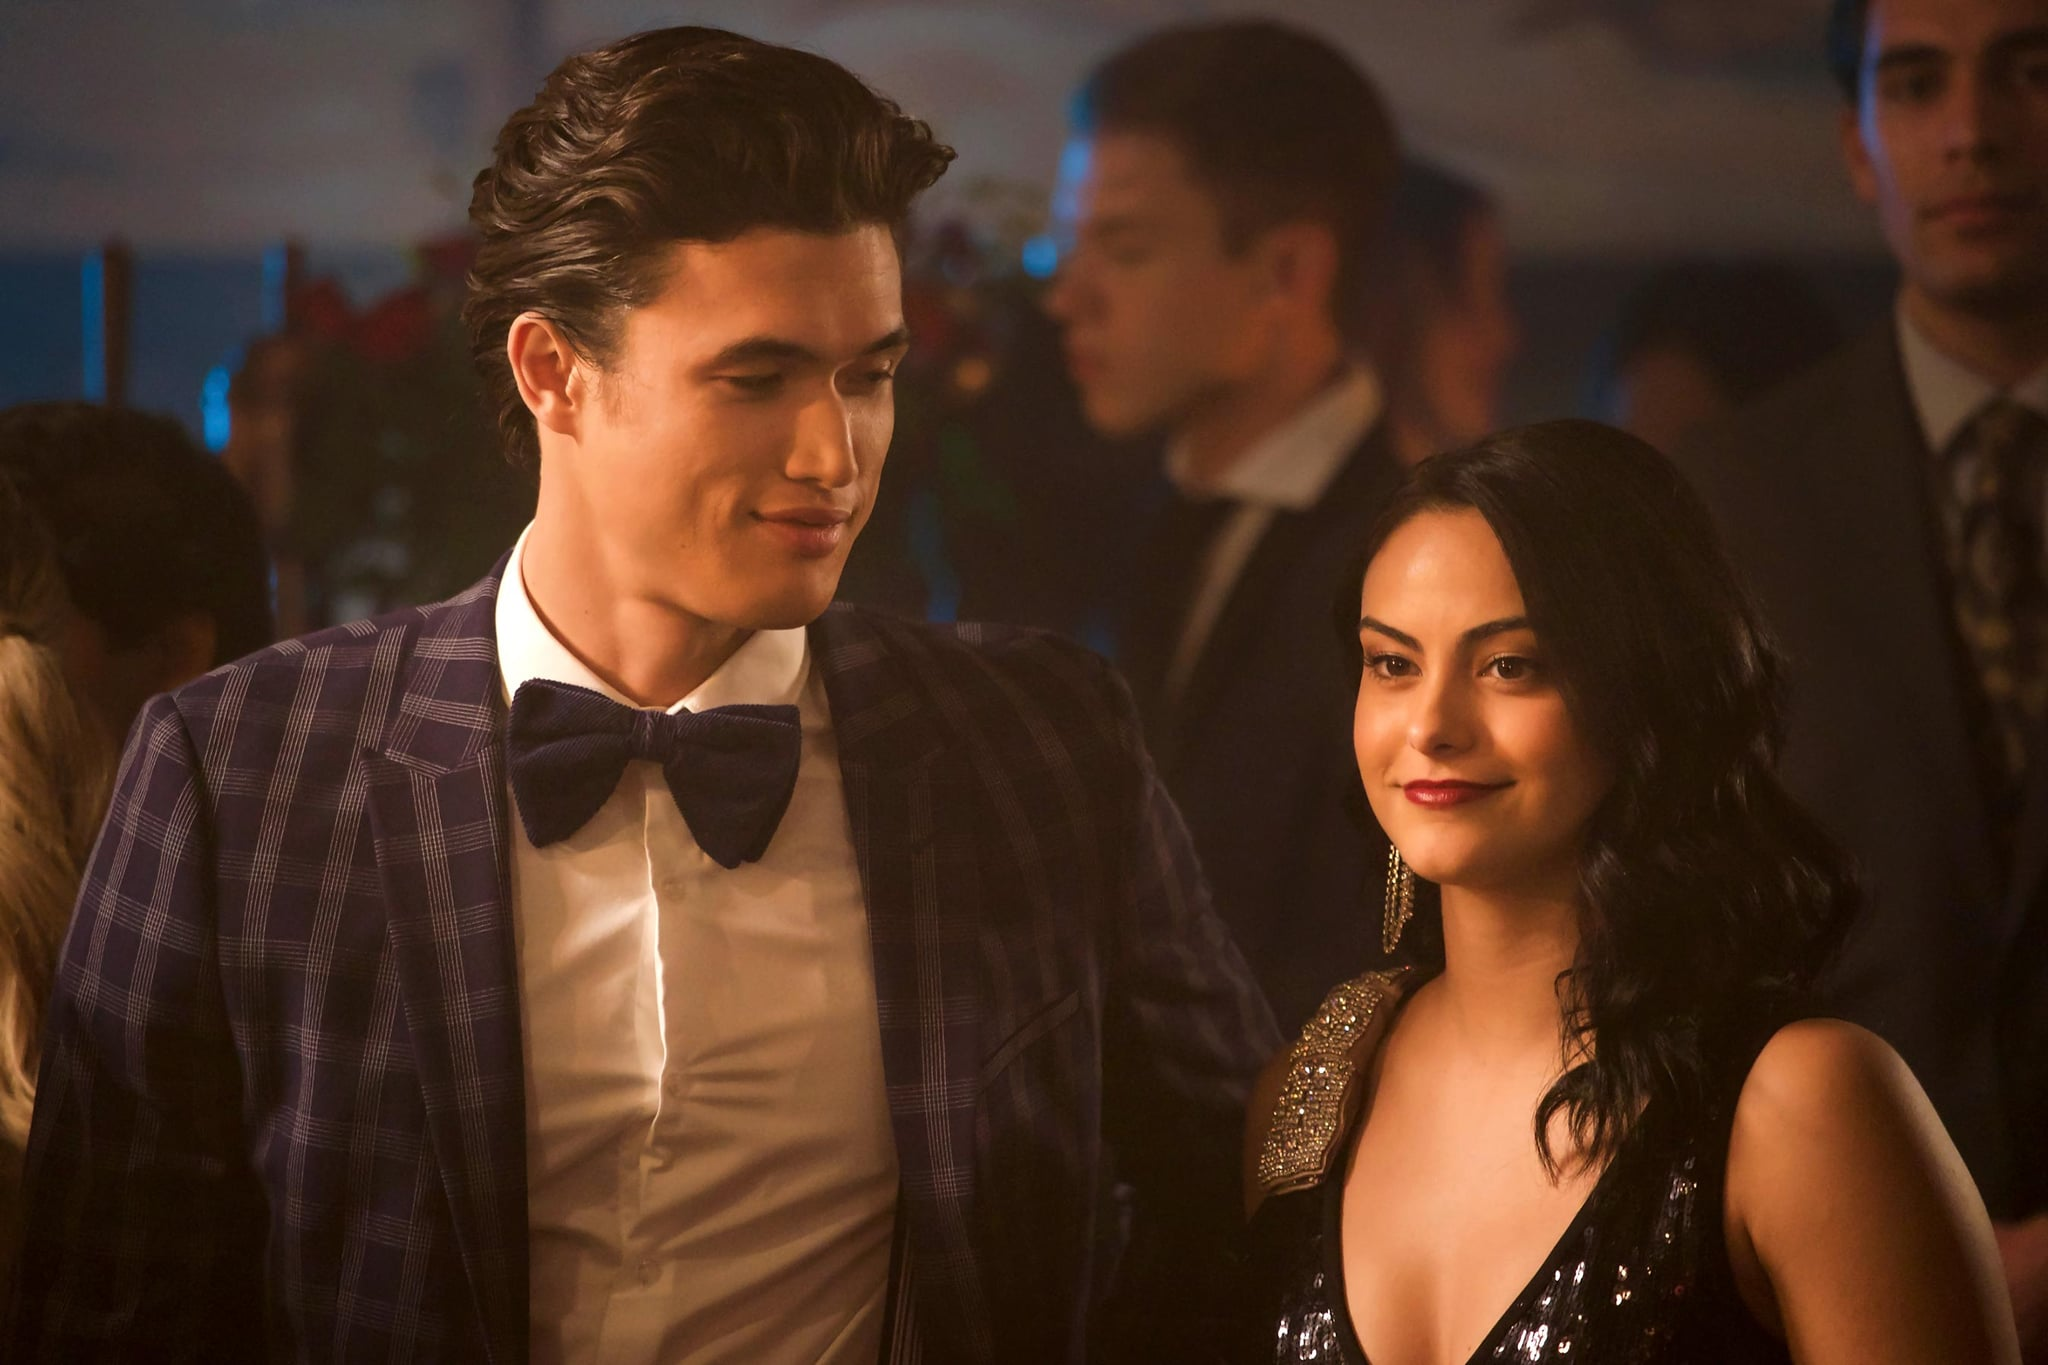 RIVERDALE, from left: Charles Melton, Camila Mendes, 'Chapter Forty-Four: No Exit', (Season 3, ep. 309, aired Jan. 16, 2019). photo: Shane Harvey / The CW / courtesy Everett Collection